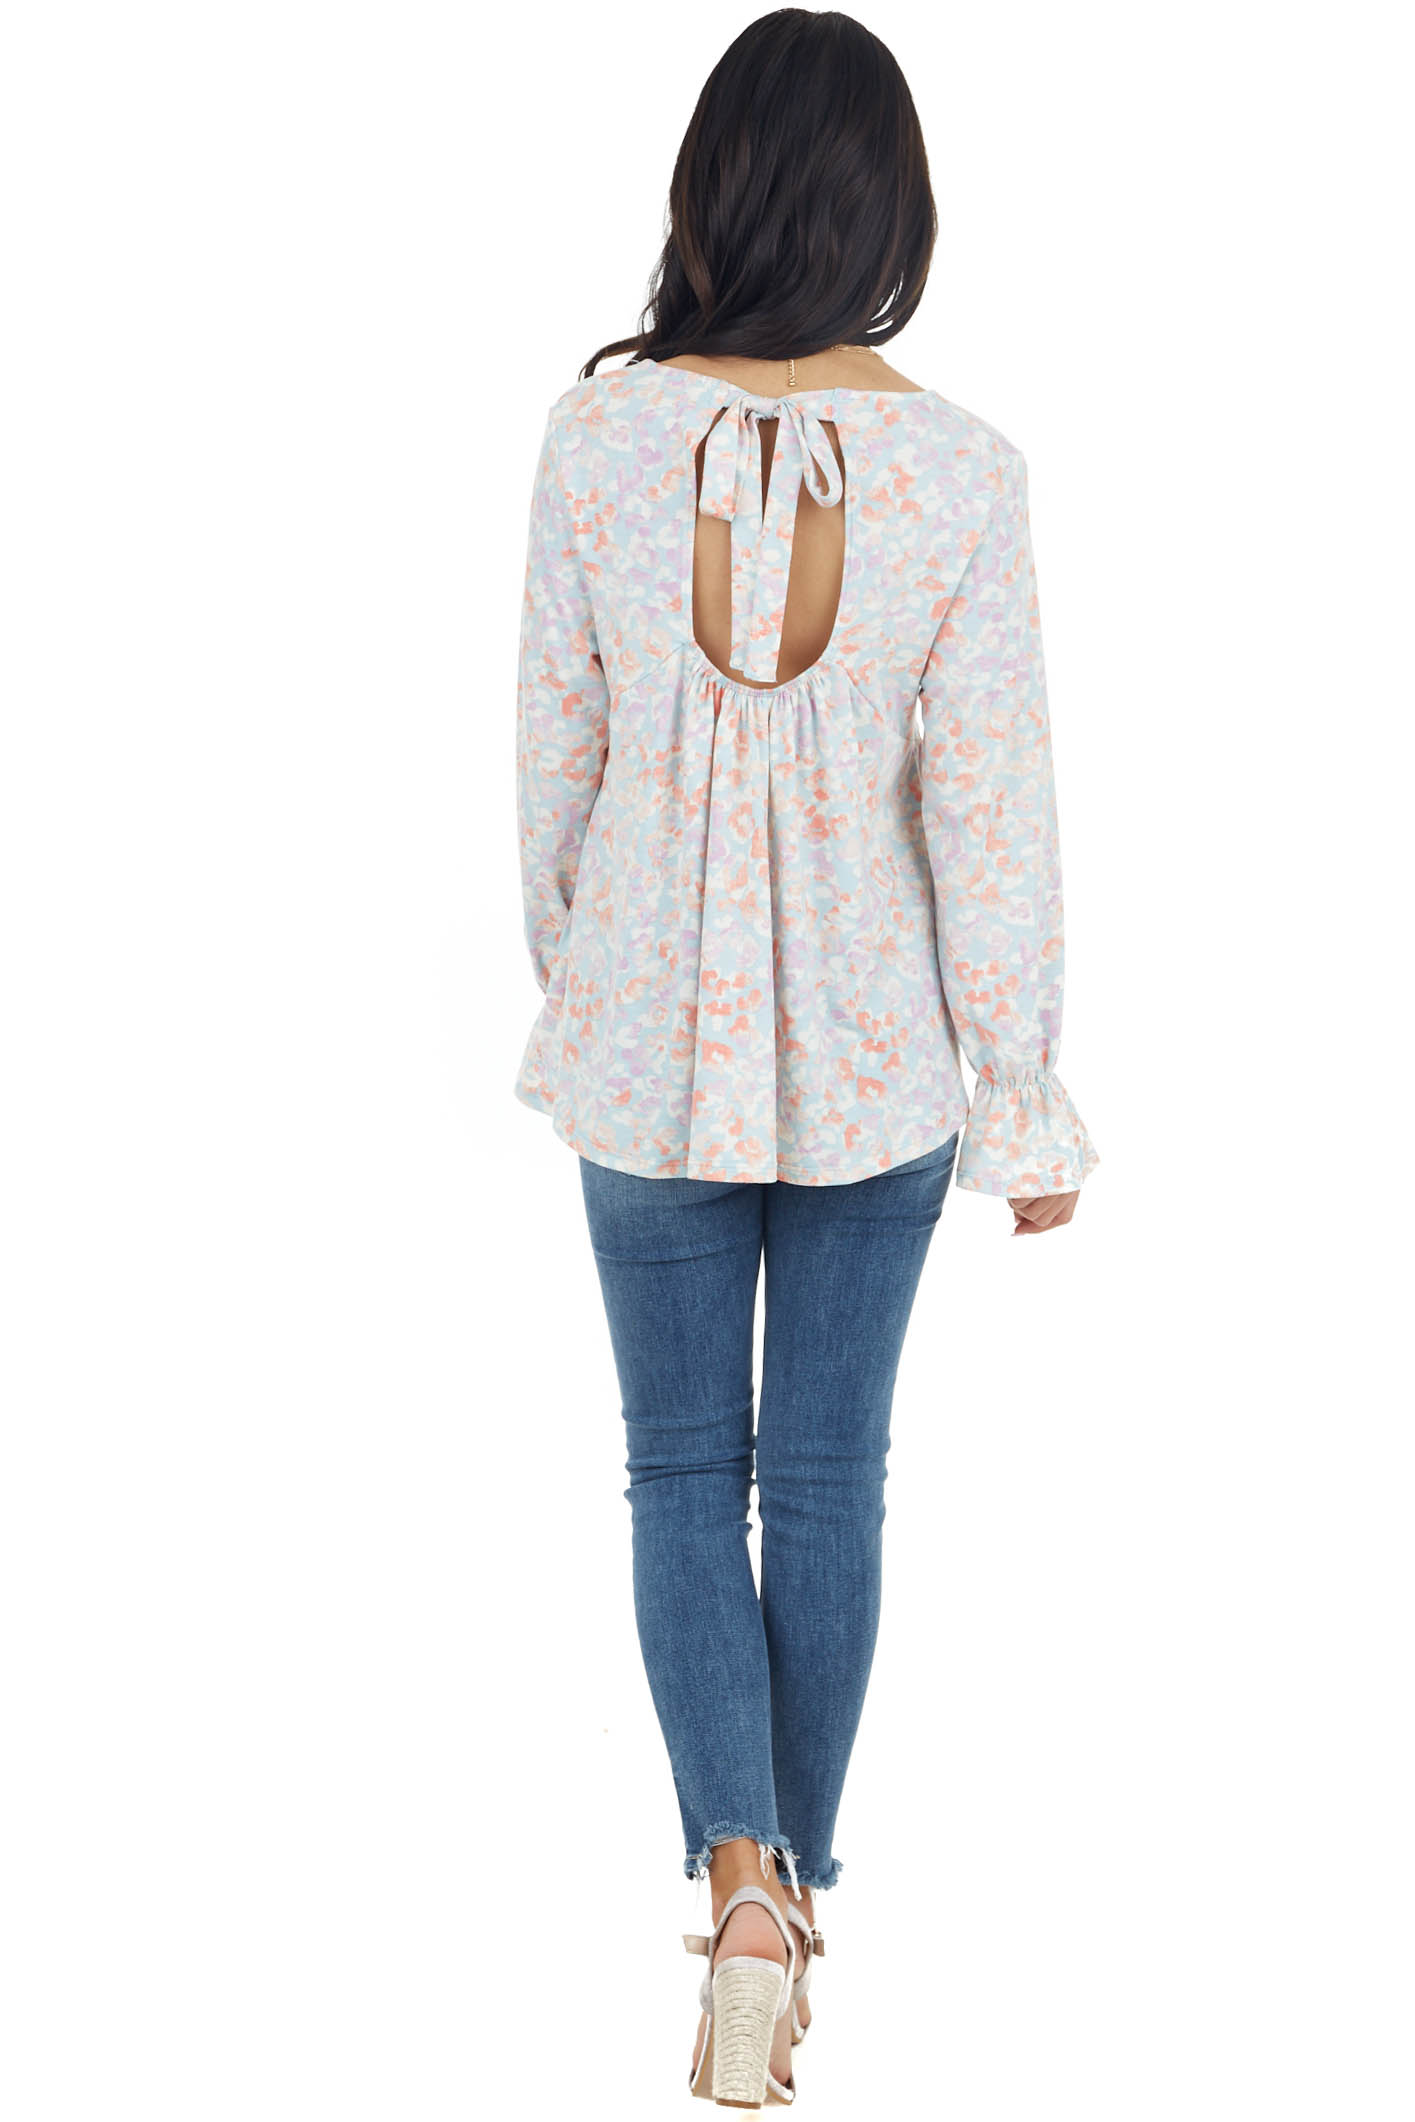 Baby Blue Floral Print Long Flare Sleeve Top with Open Back